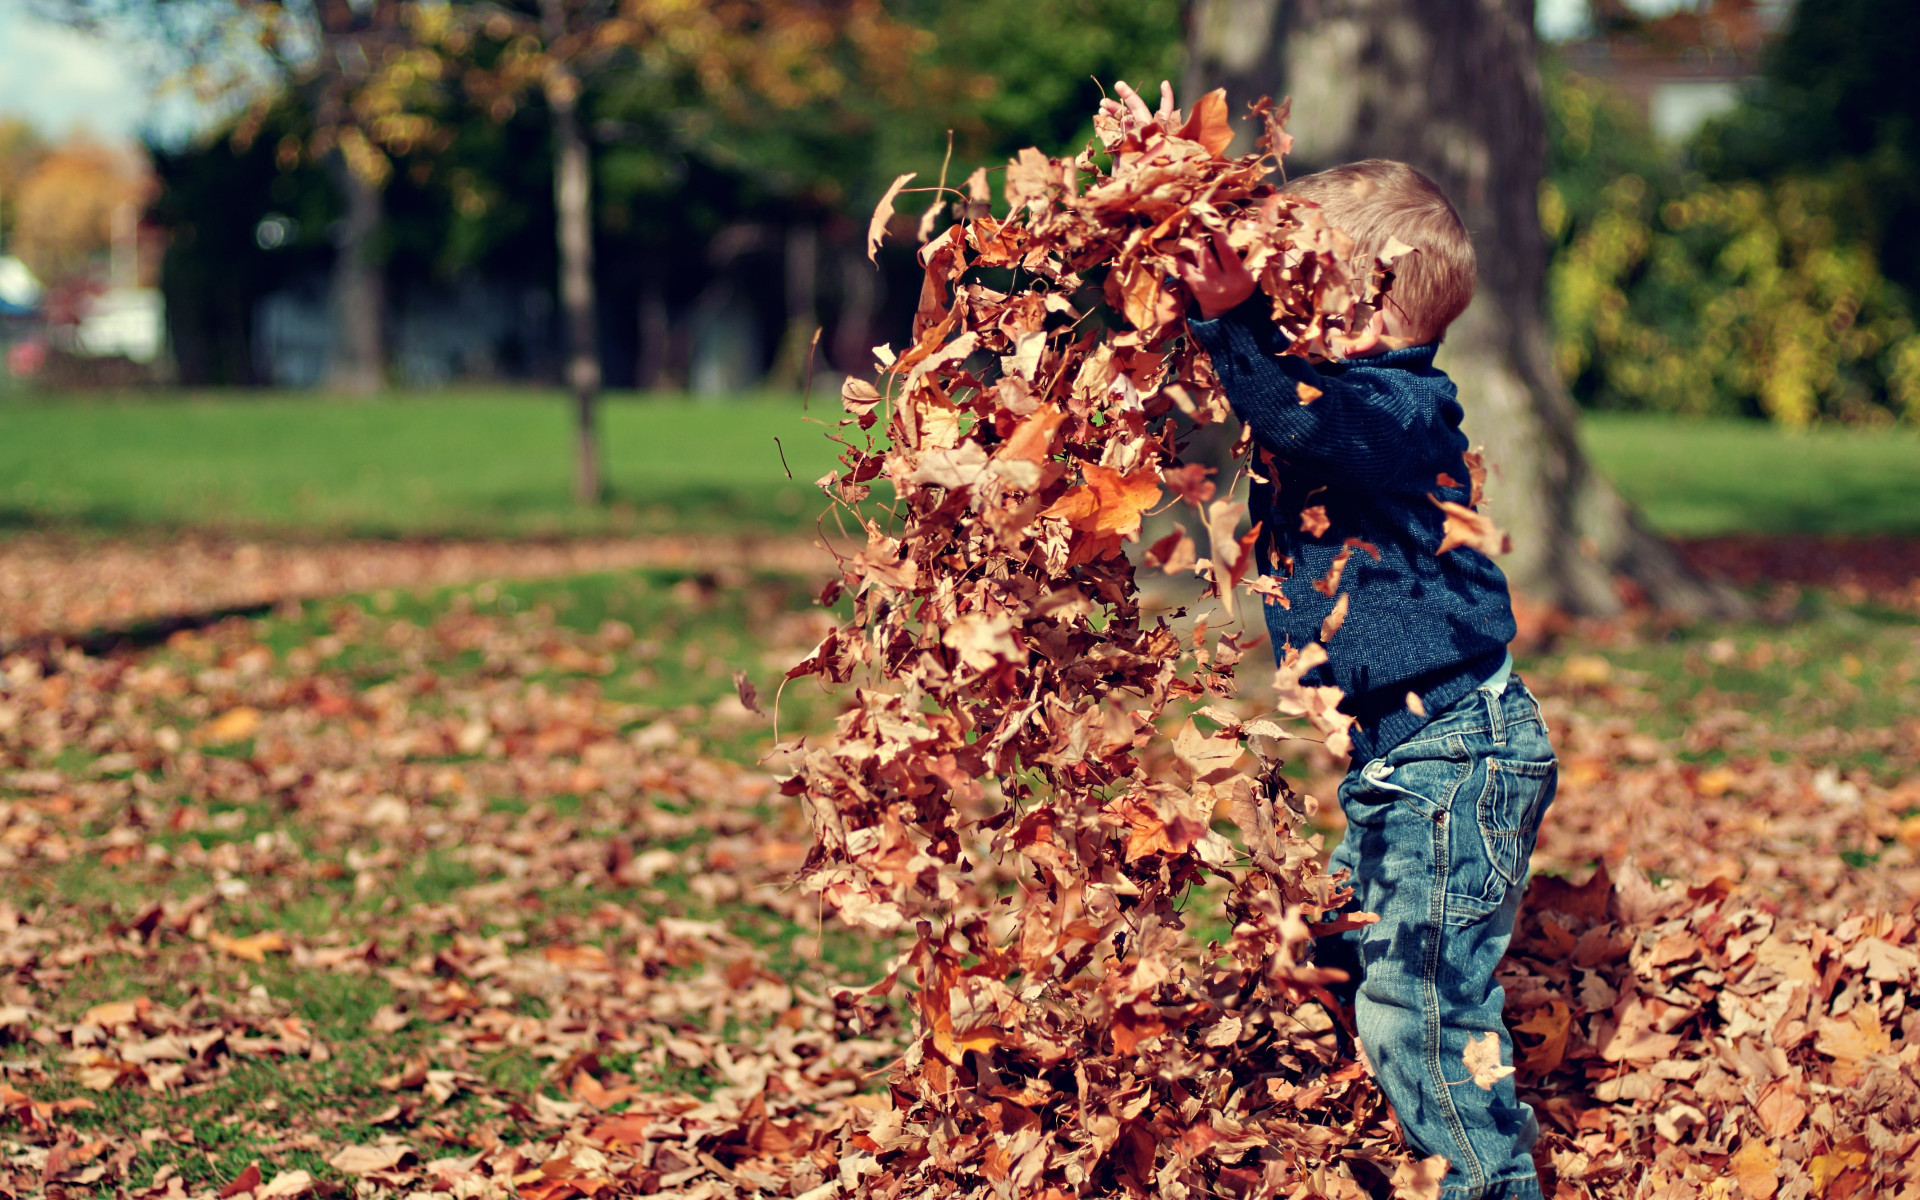 The child is playing with leaves | 1920x1200 wallpaper